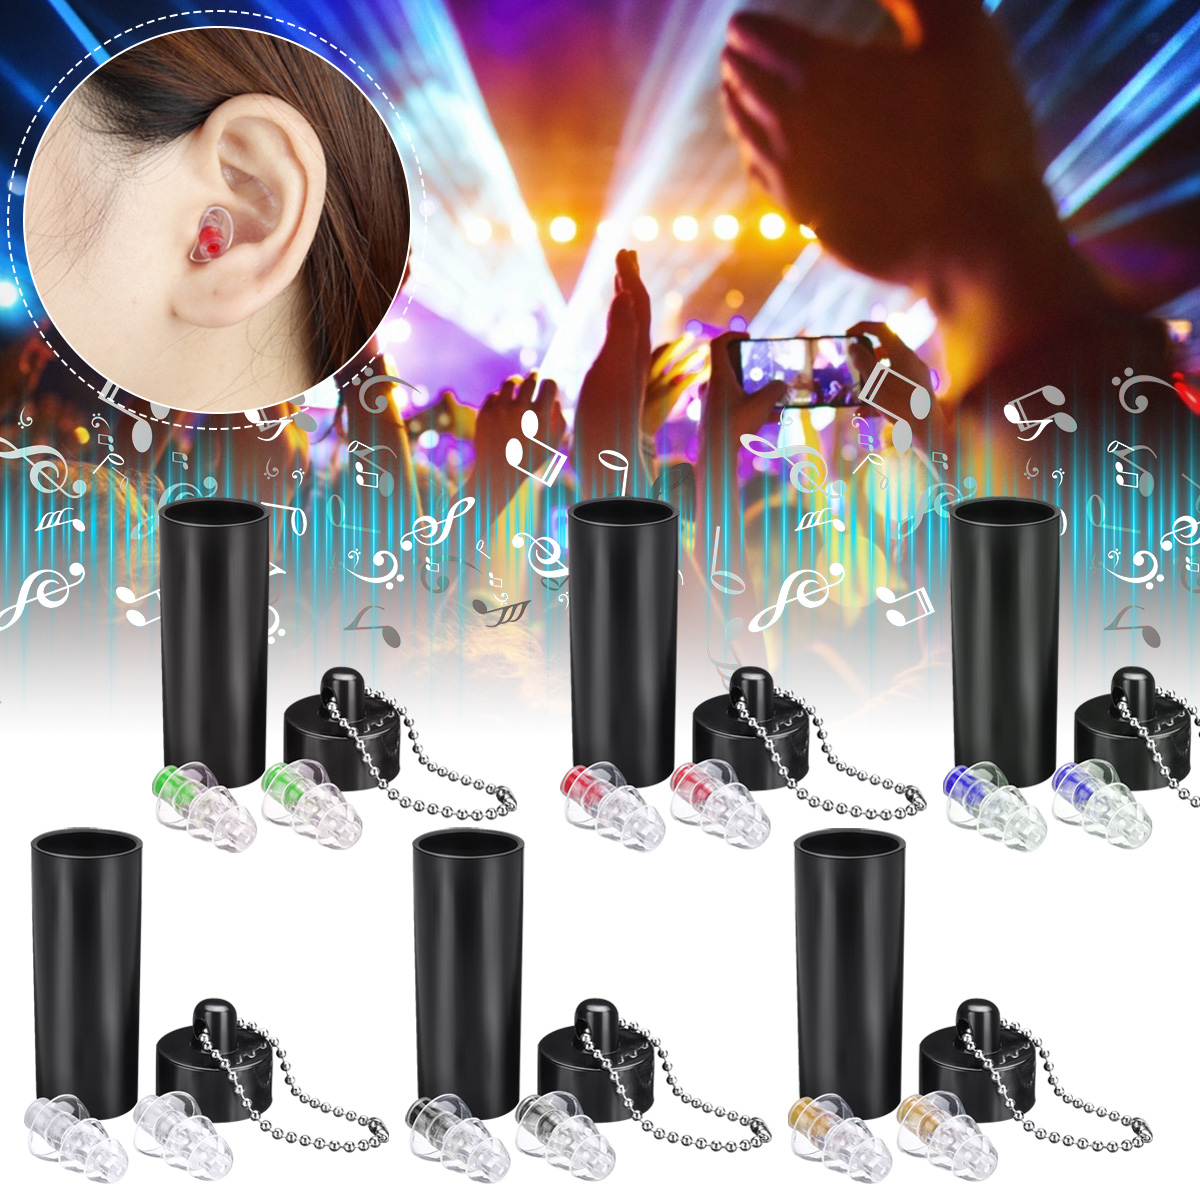 Hearing Protection Earplug Concert Musician Sleep-Care Cancelling Motorcycle Reusable